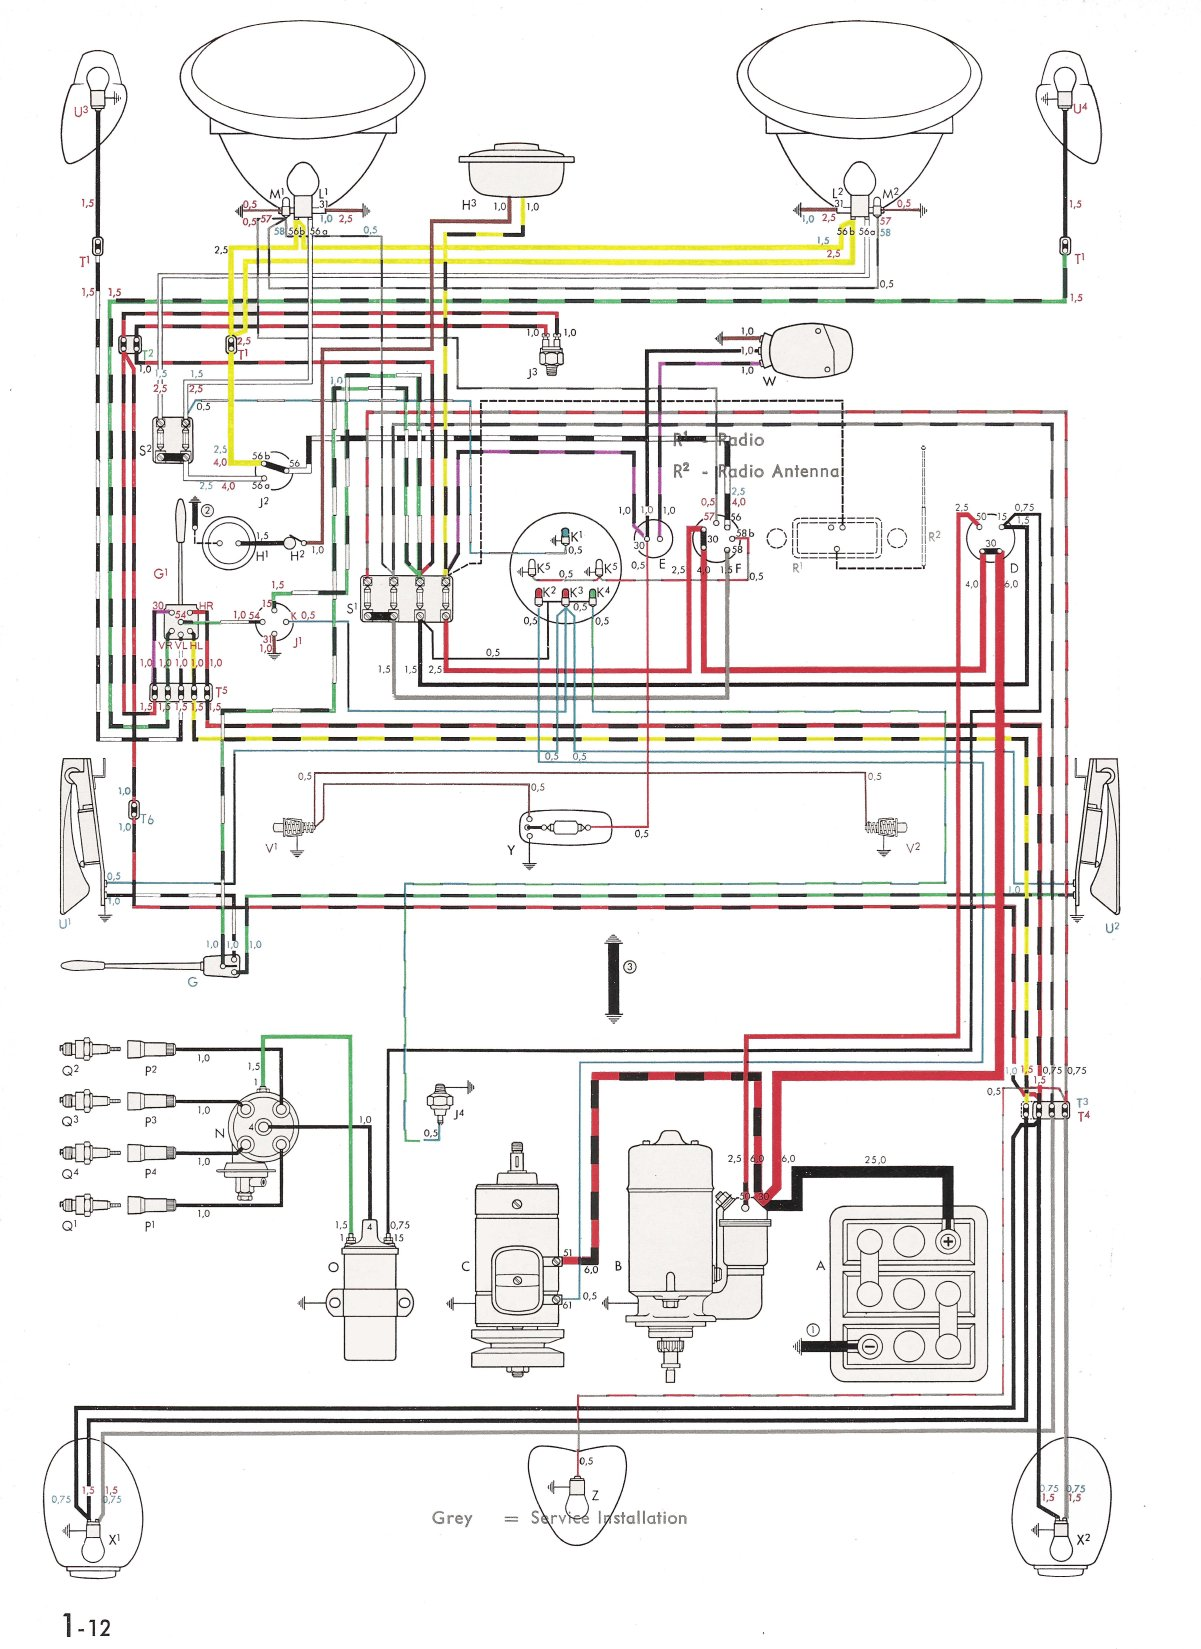 thesamba com type 1 wiring diagrams rh thesamba com 2000 vw beetle wiring schematics 2000 vw beetle wiring schematics